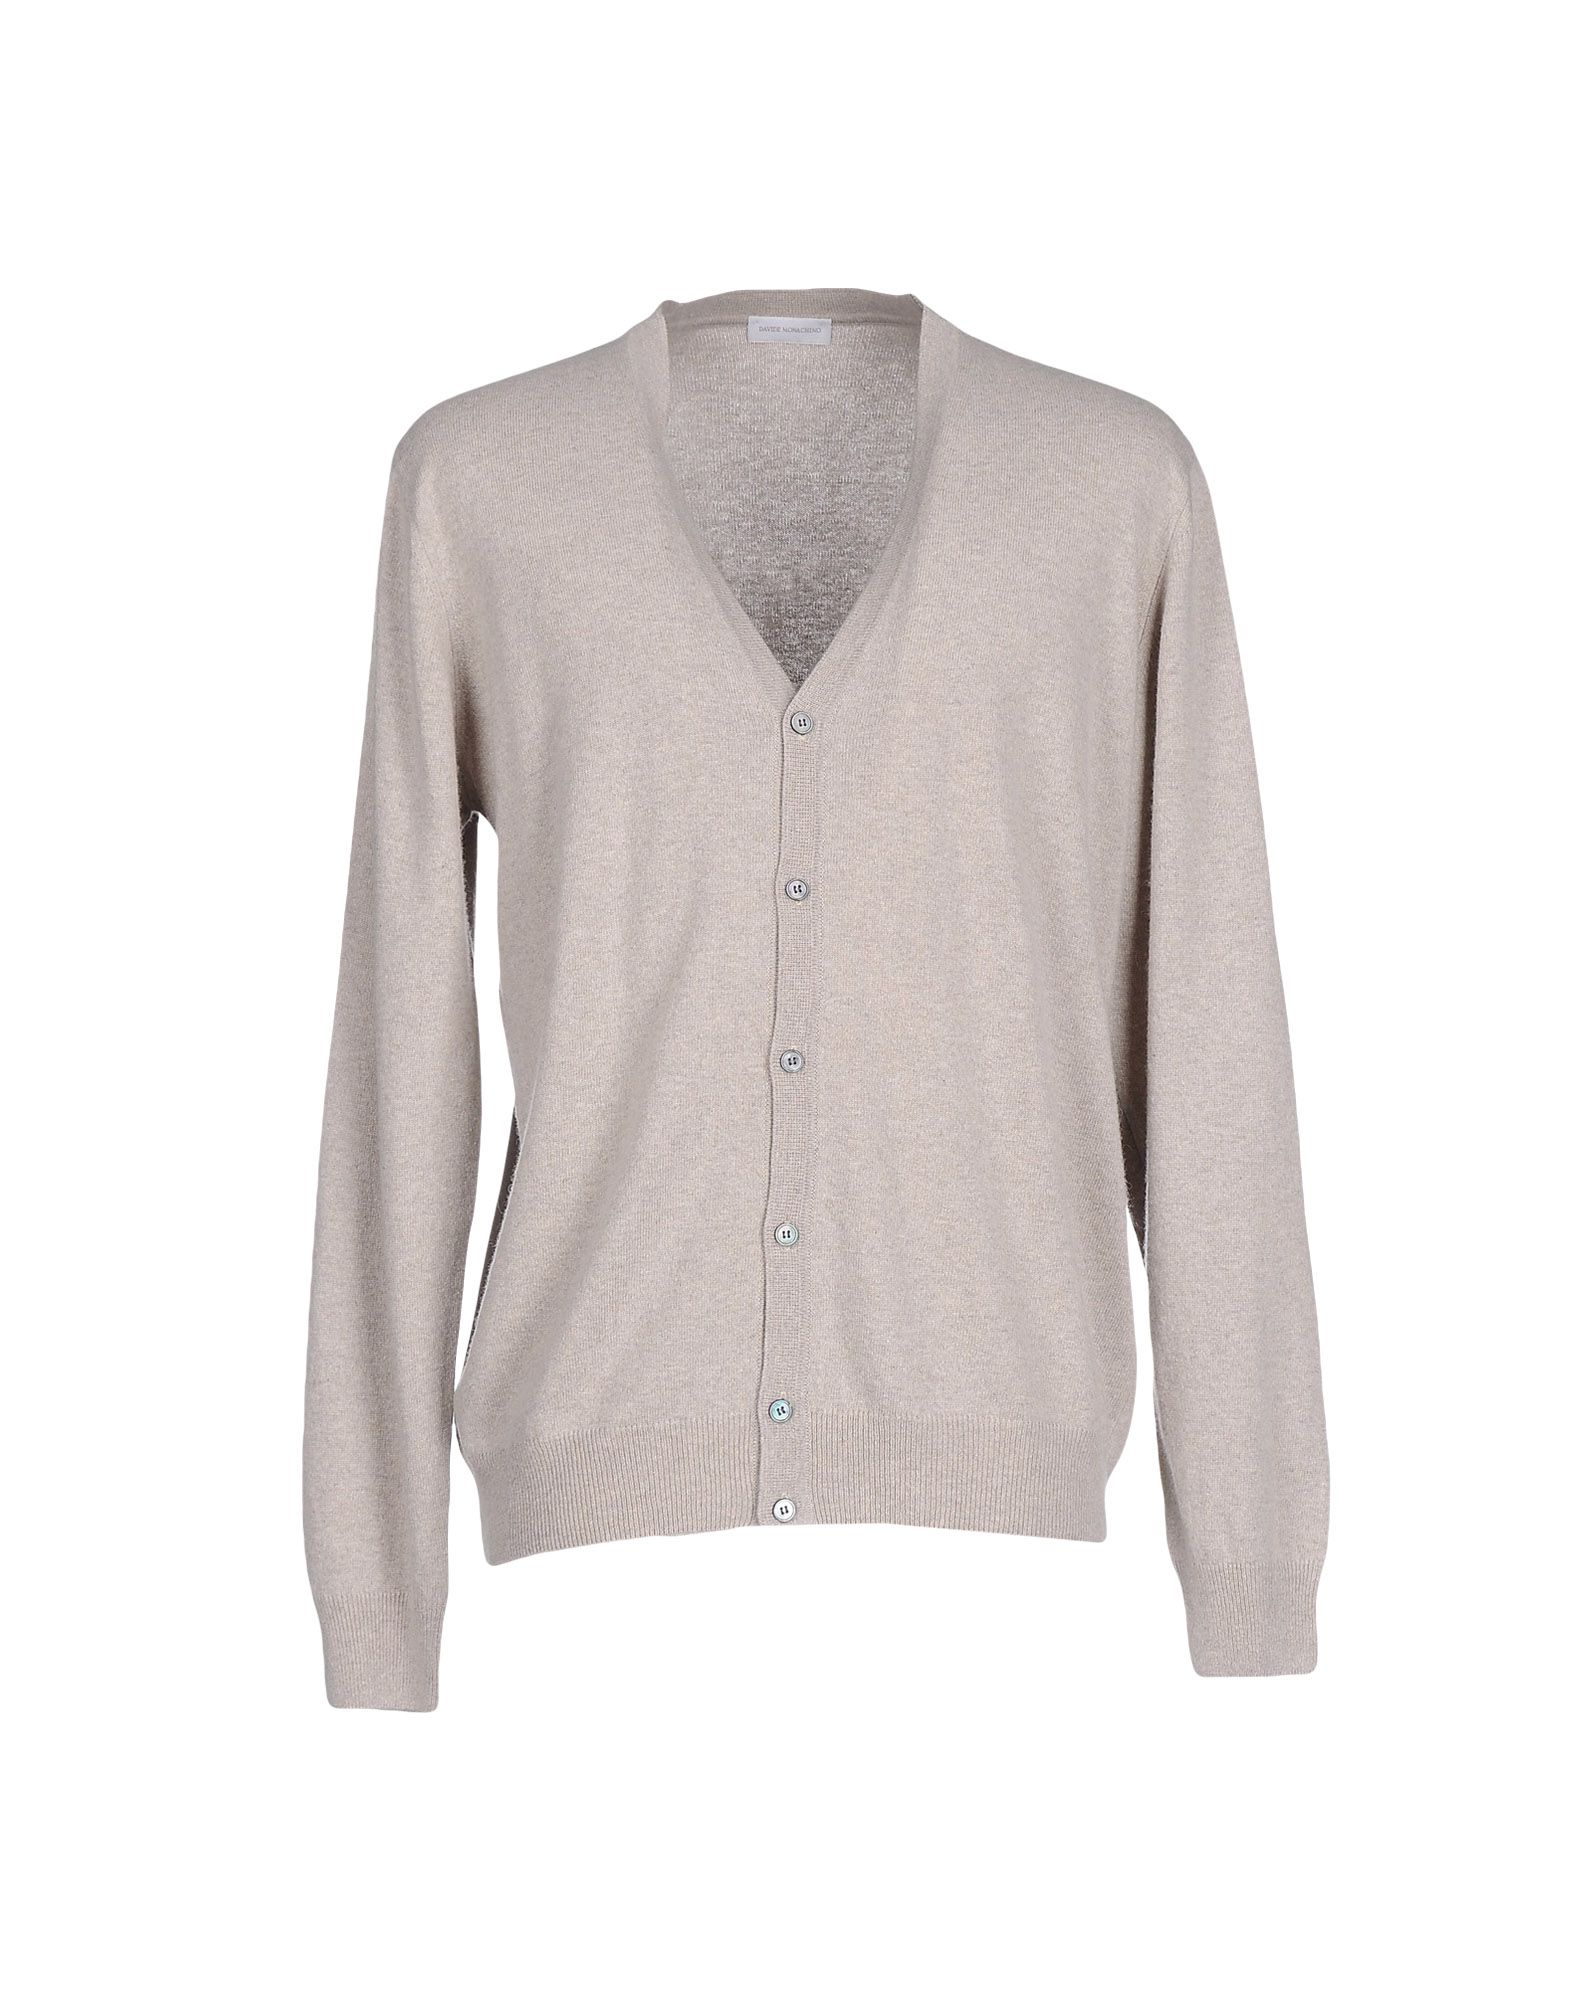 DAVIDE MONACHINO CASHMERE Кардиган davide monachino cashmere кардиган